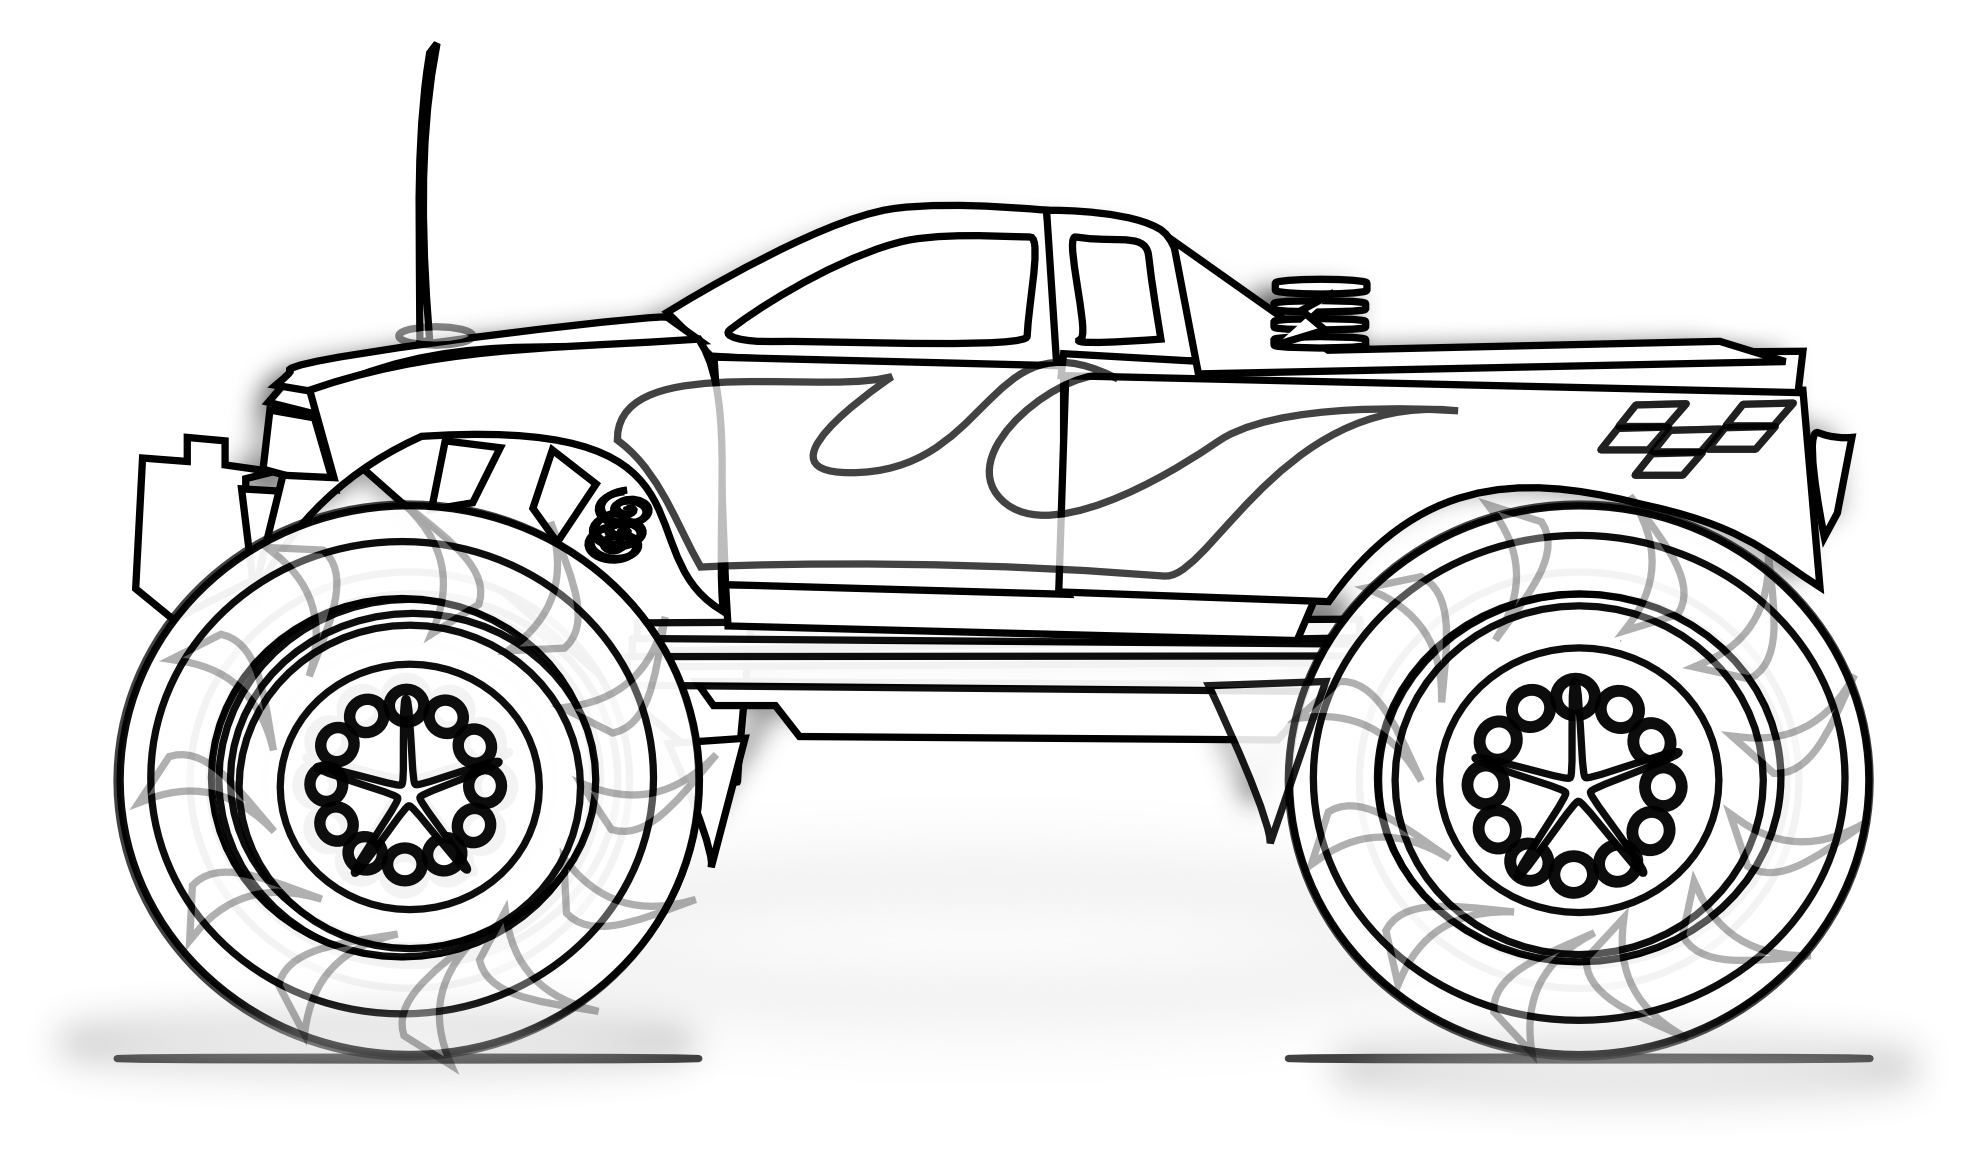 truck colouring in free printable fire truck coloring pages for kids colouring in truck